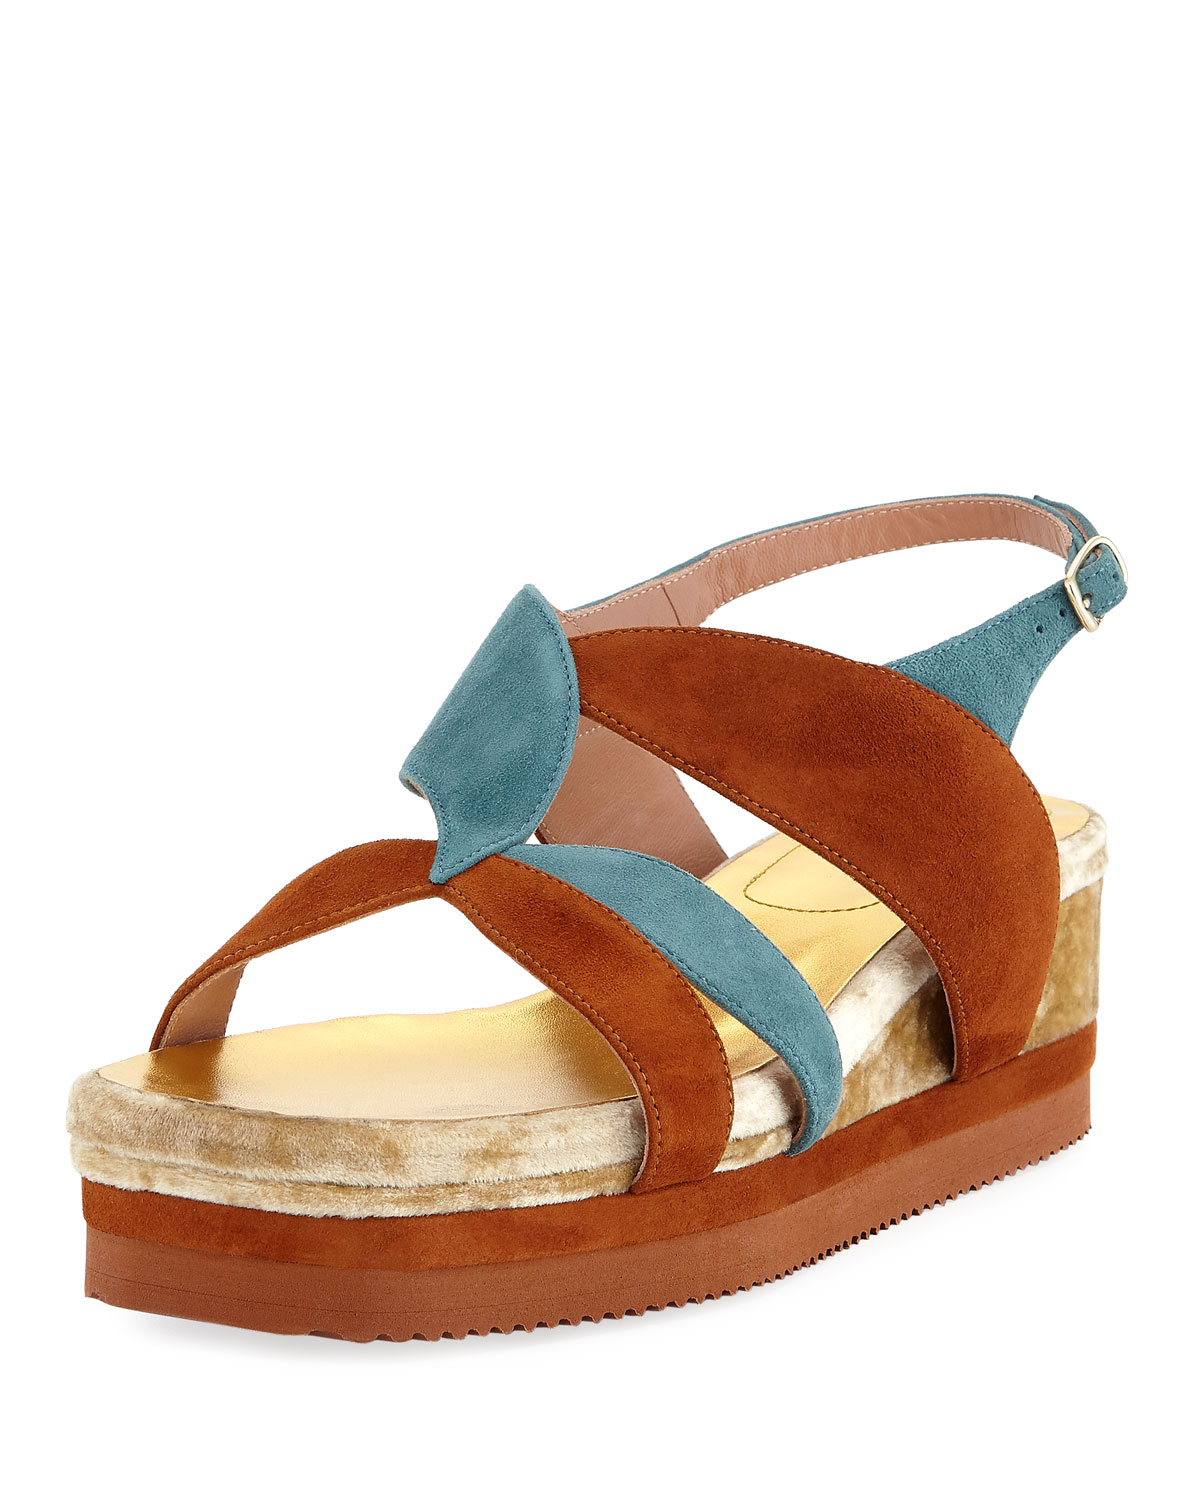 526189a97c1a Dries Van Noten Flatform Wedge Platform Sandal